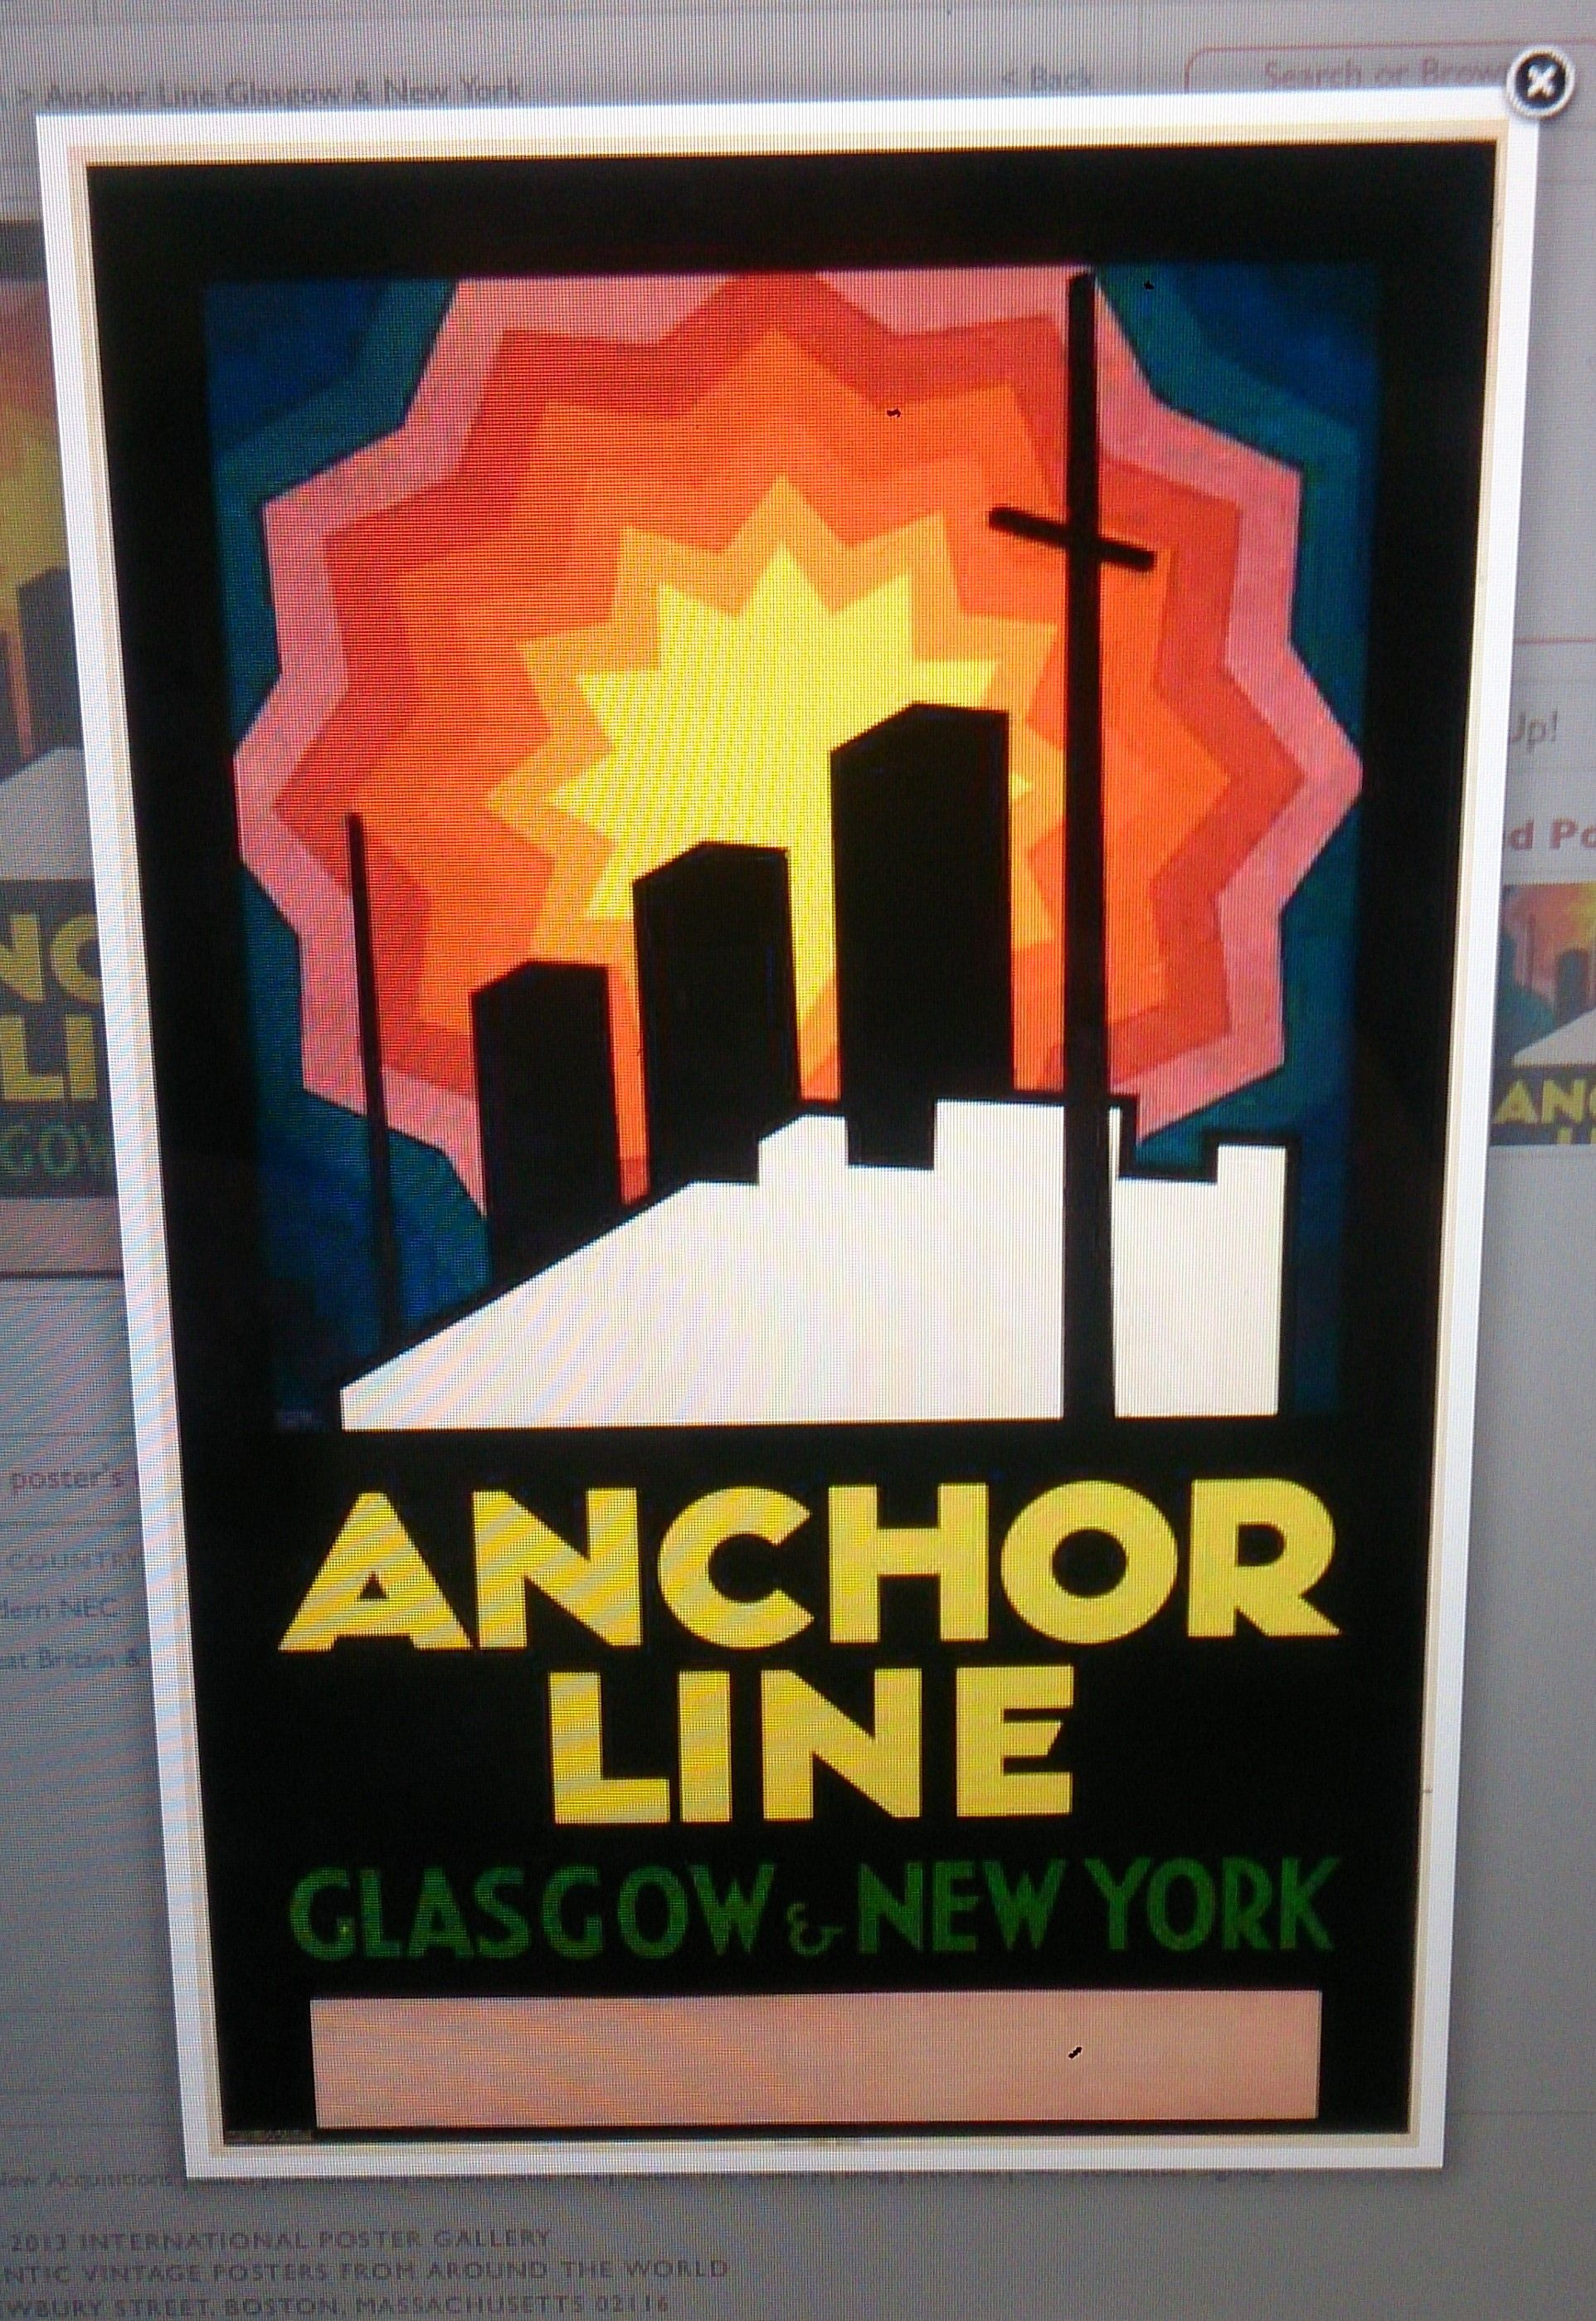 Original poster advertising the Glasgow based, Anchor Line ...